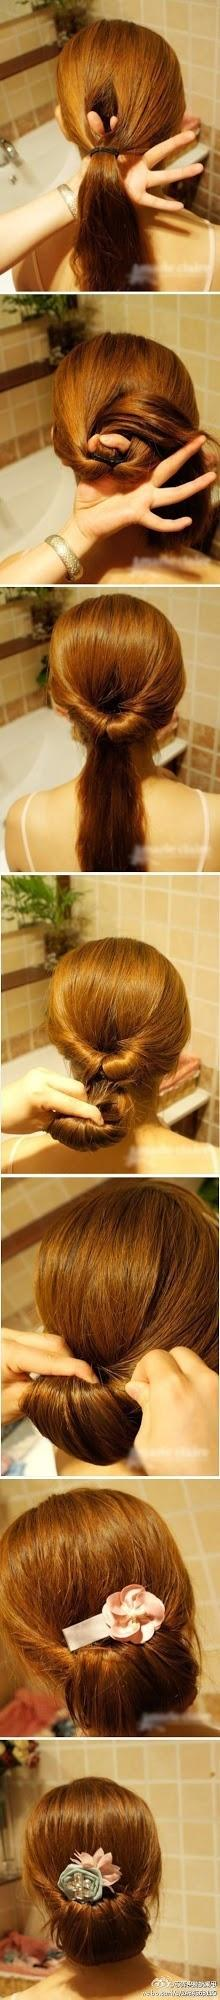 Make a Simple updo, but I would only do half my hair, and then the rest long and flowing: Hair Ideas, Hairstyles, Hairdos, Hair Styles, Hair Tutorial, Makeup, Updos, Hair Do, Easy Updo